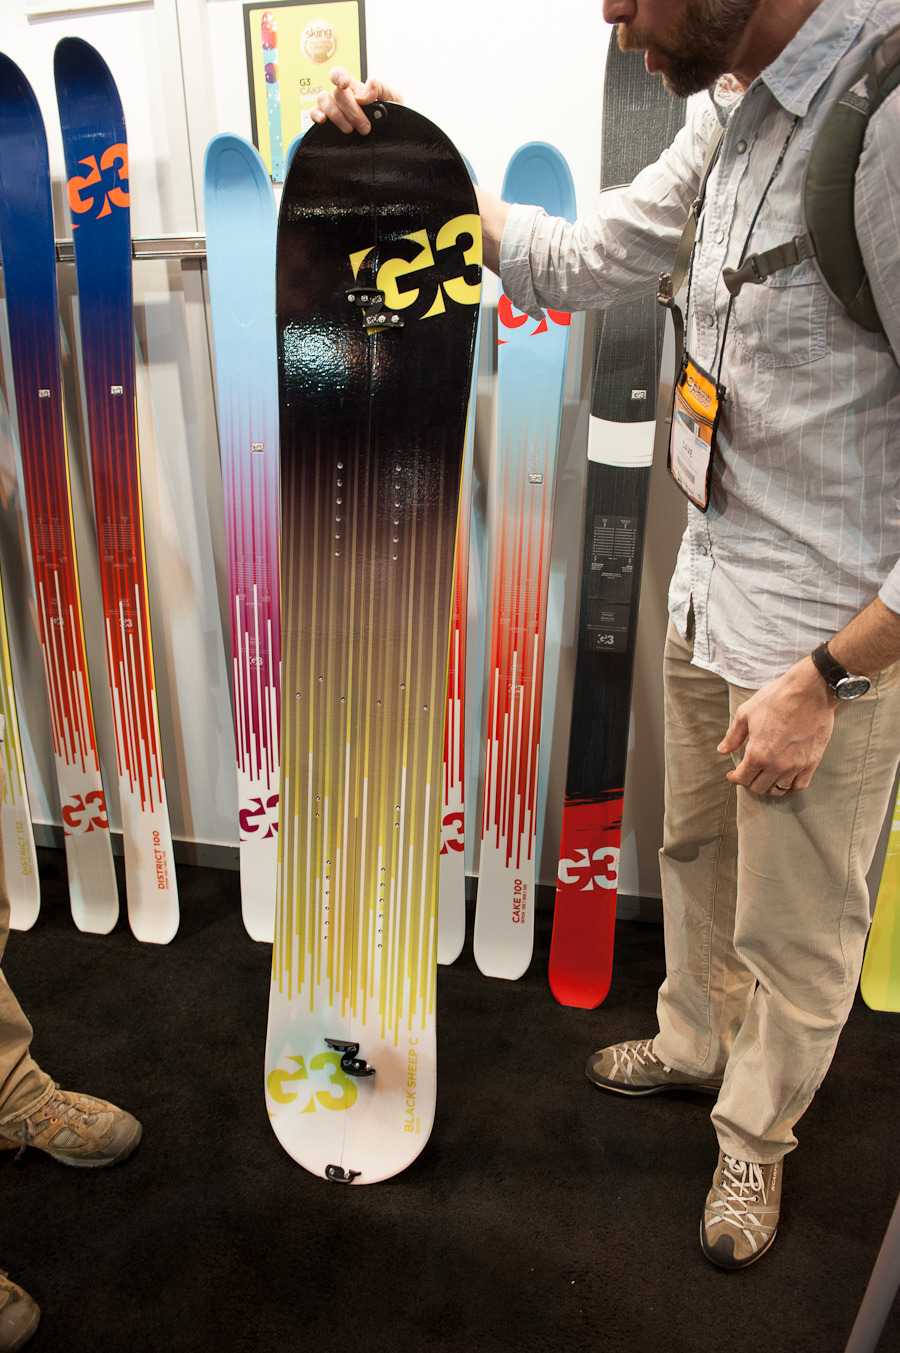 The G3 Splitboard is for those snowboarders looking to travel into the backcountry. - ©Ashleigh Miller Photography